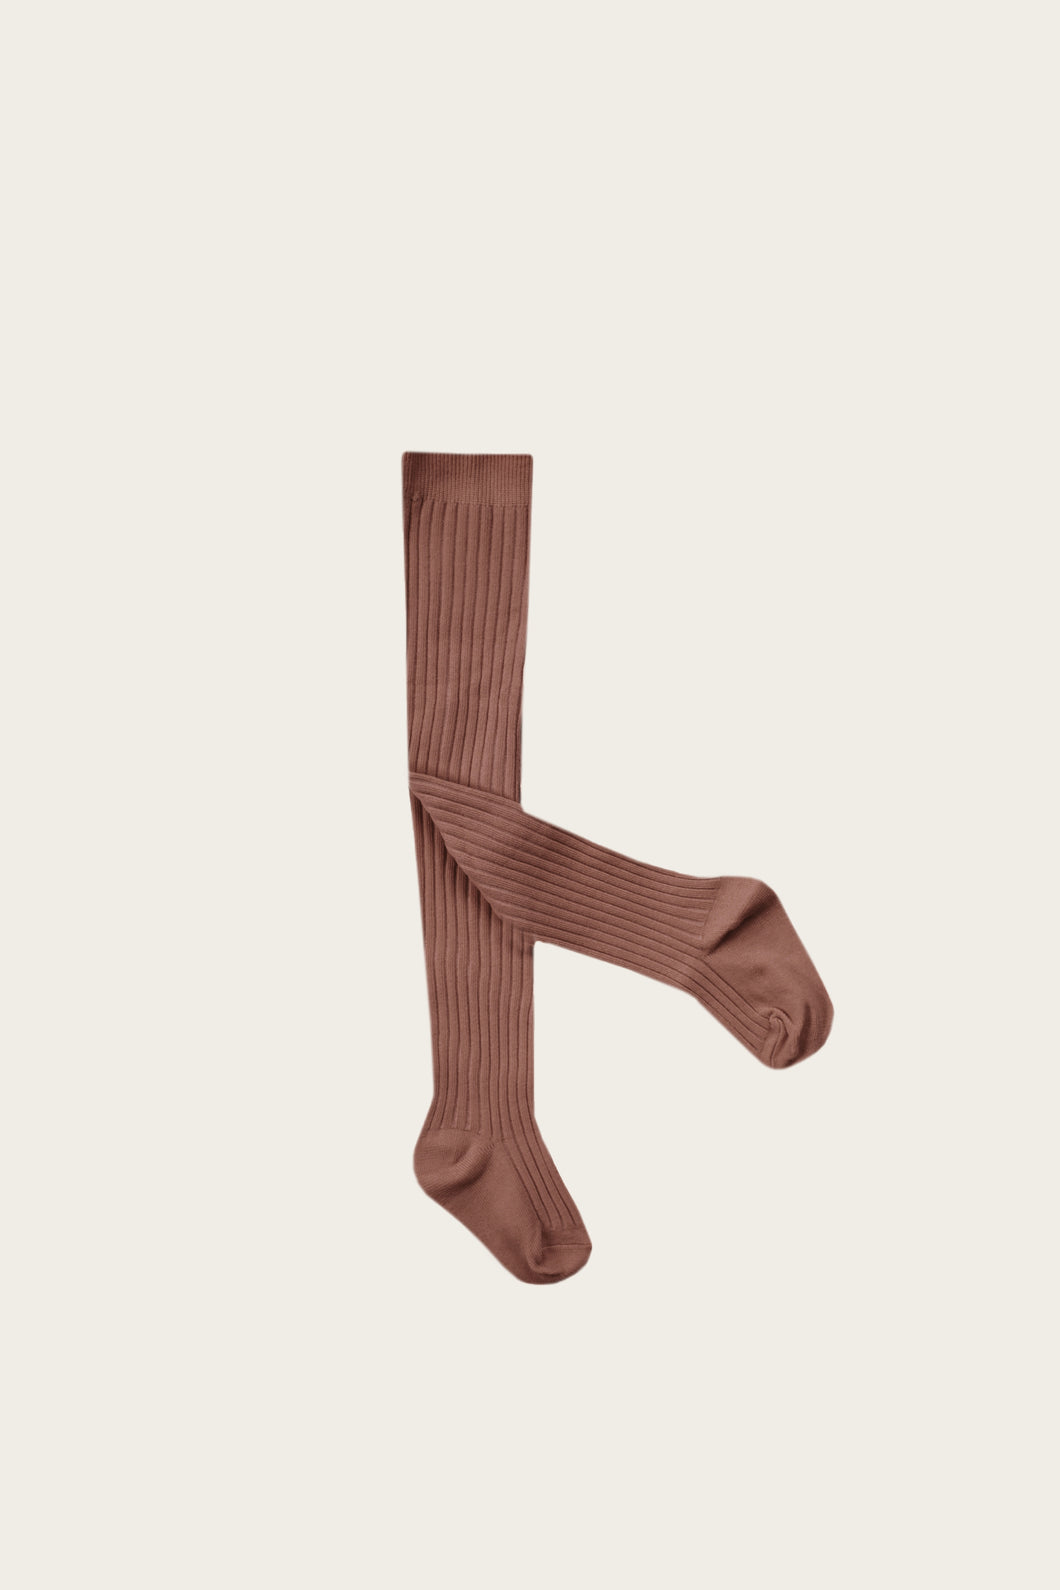 Jamie Kay ribbed tights - caramel